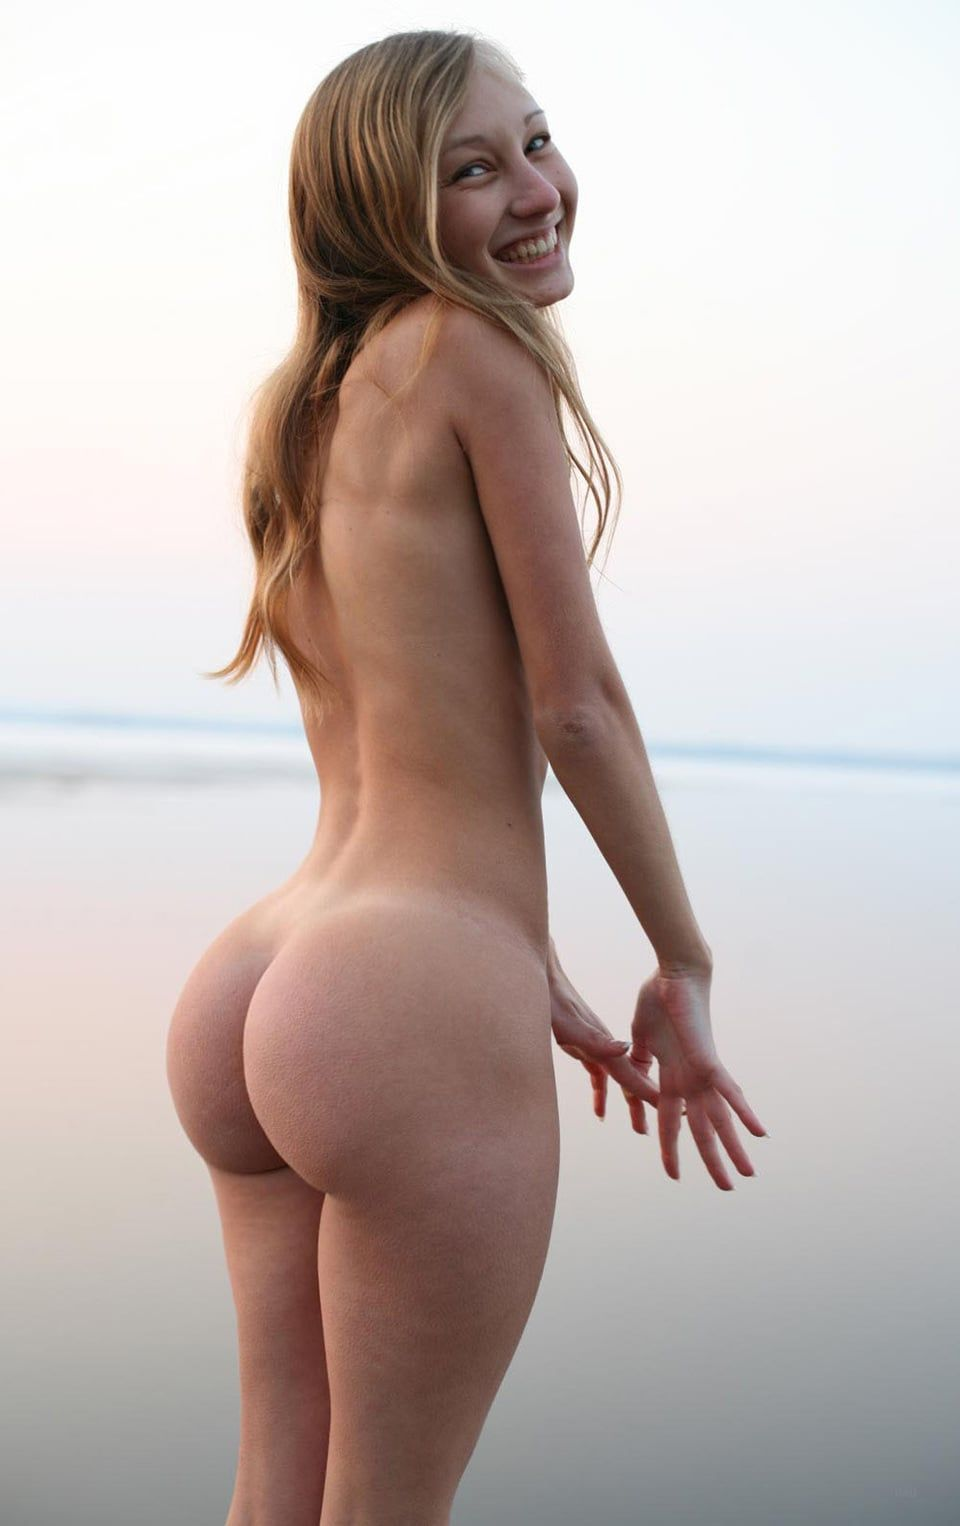 She Puts Her Boyfriend in Chastity Before Using His Ass With a Strapon.